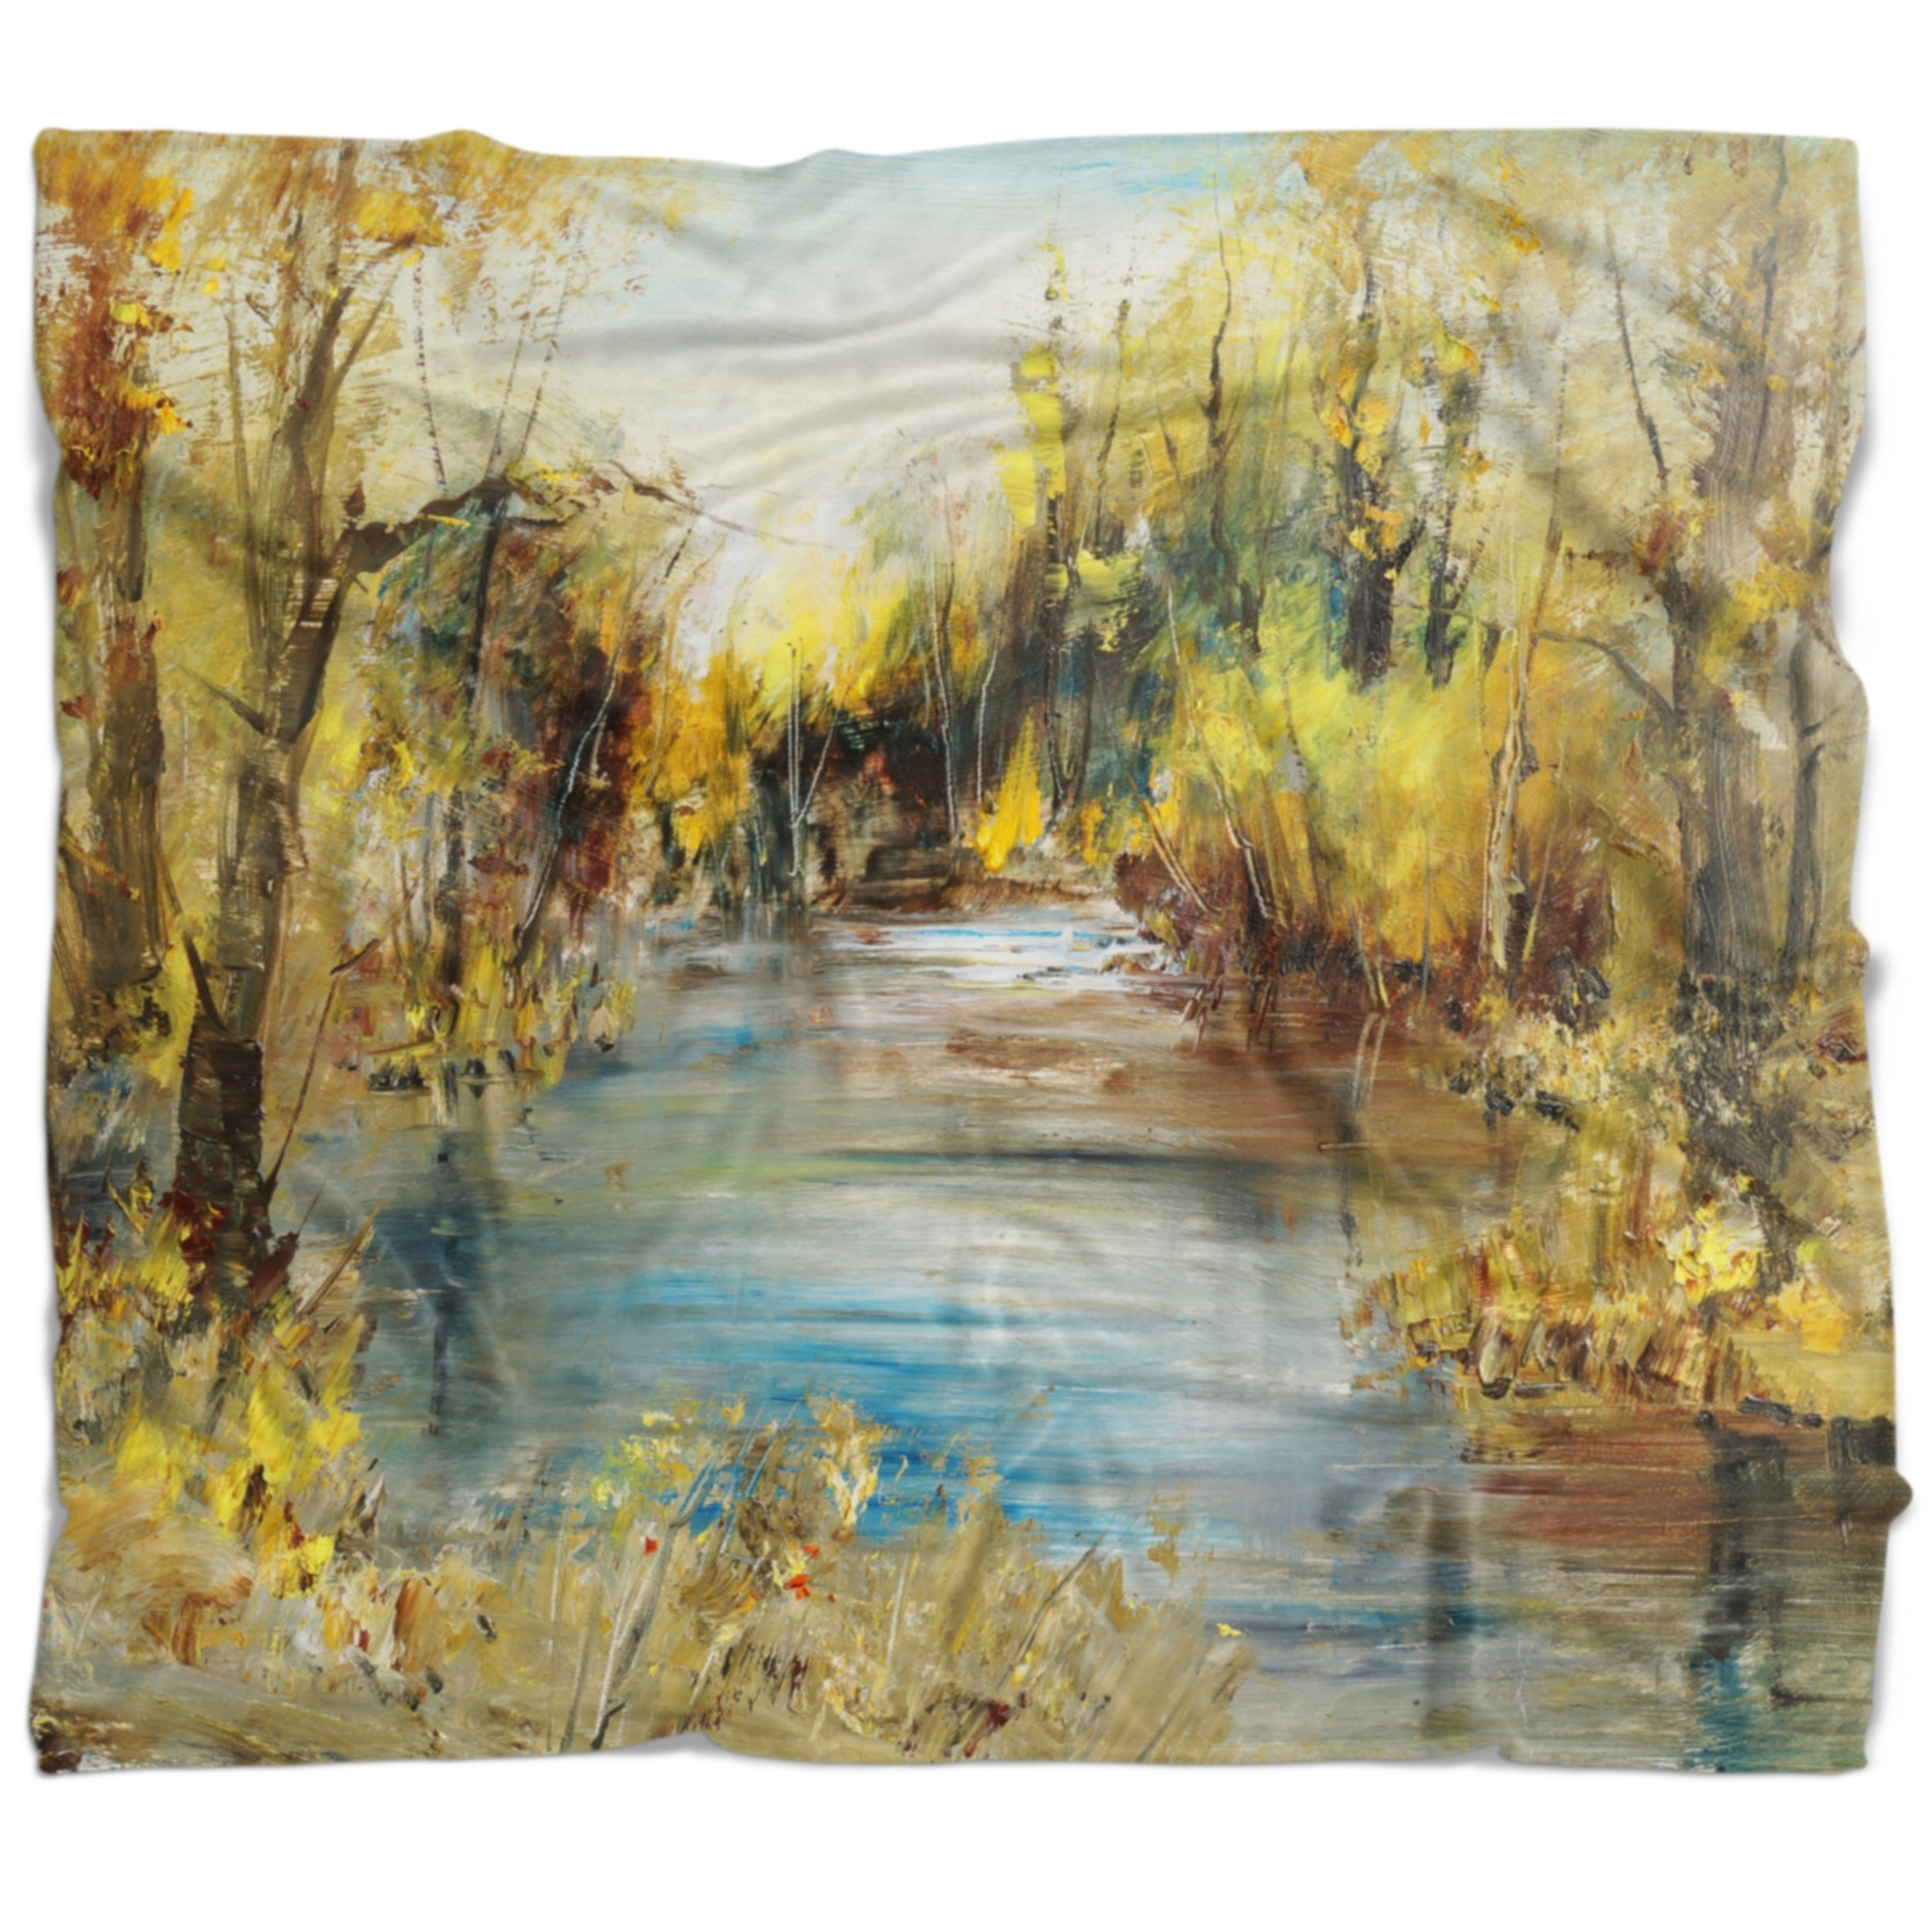 Designart Lake In Forest Landscape Throw Blanket On Sale Overstock 20911547 71 In X 59 In